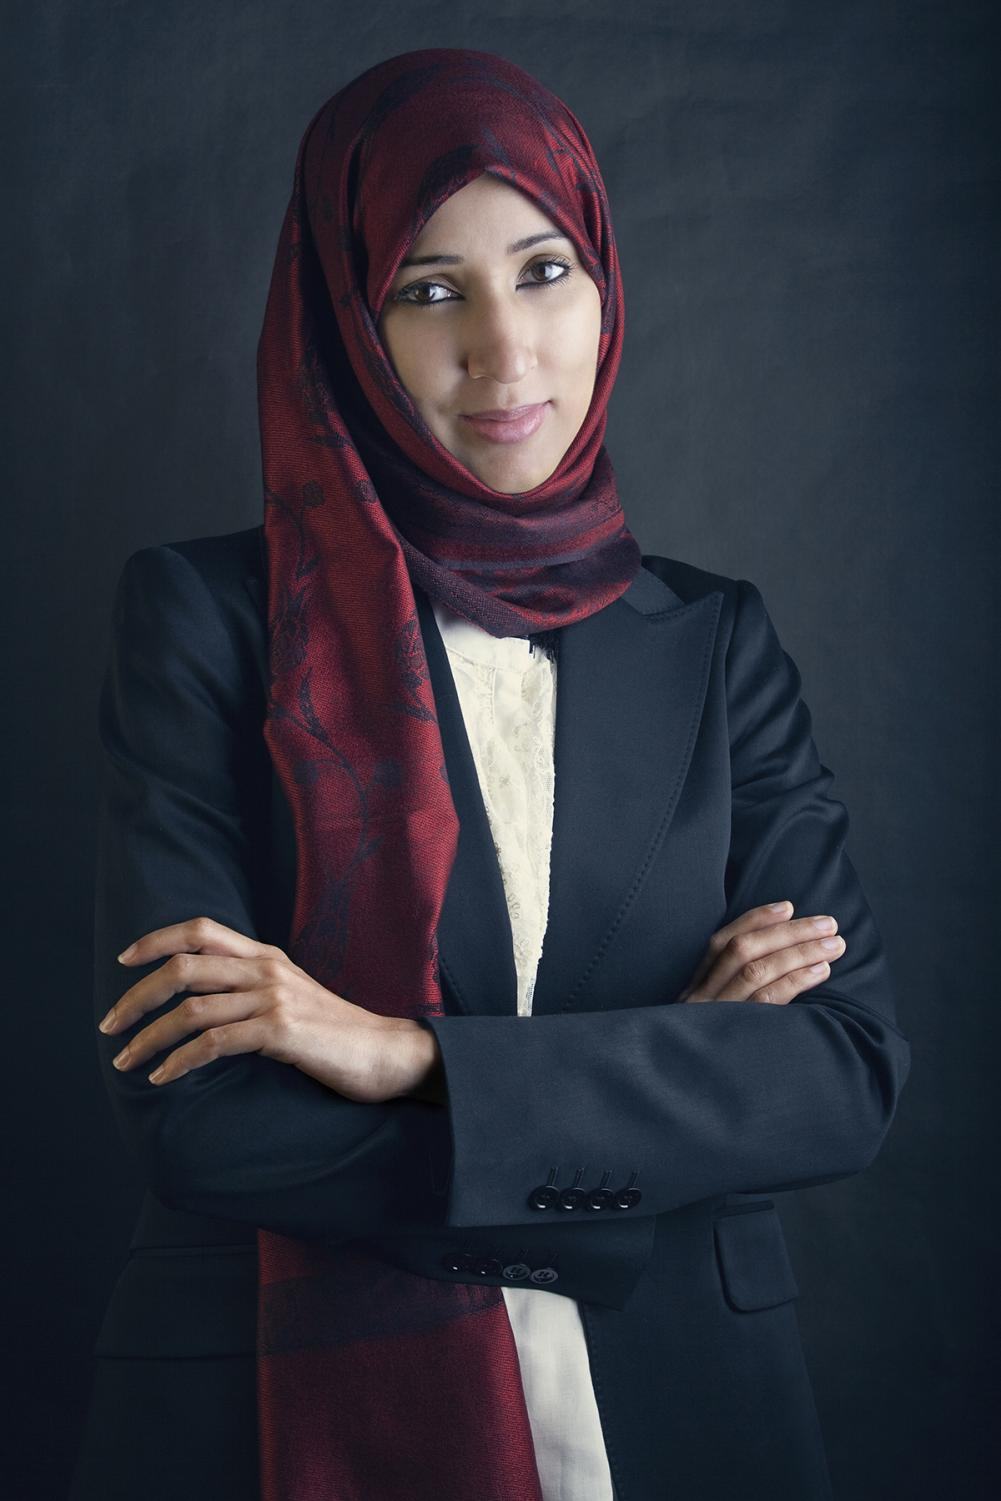 Women's rights activist Manal al-Sharif, one of the organisers of the women's right-to-drive campaign. By Manal al-Shraif, CC BY-SA 3.0, https://commons.wikimedia.org/w/index.php?curid=17130858